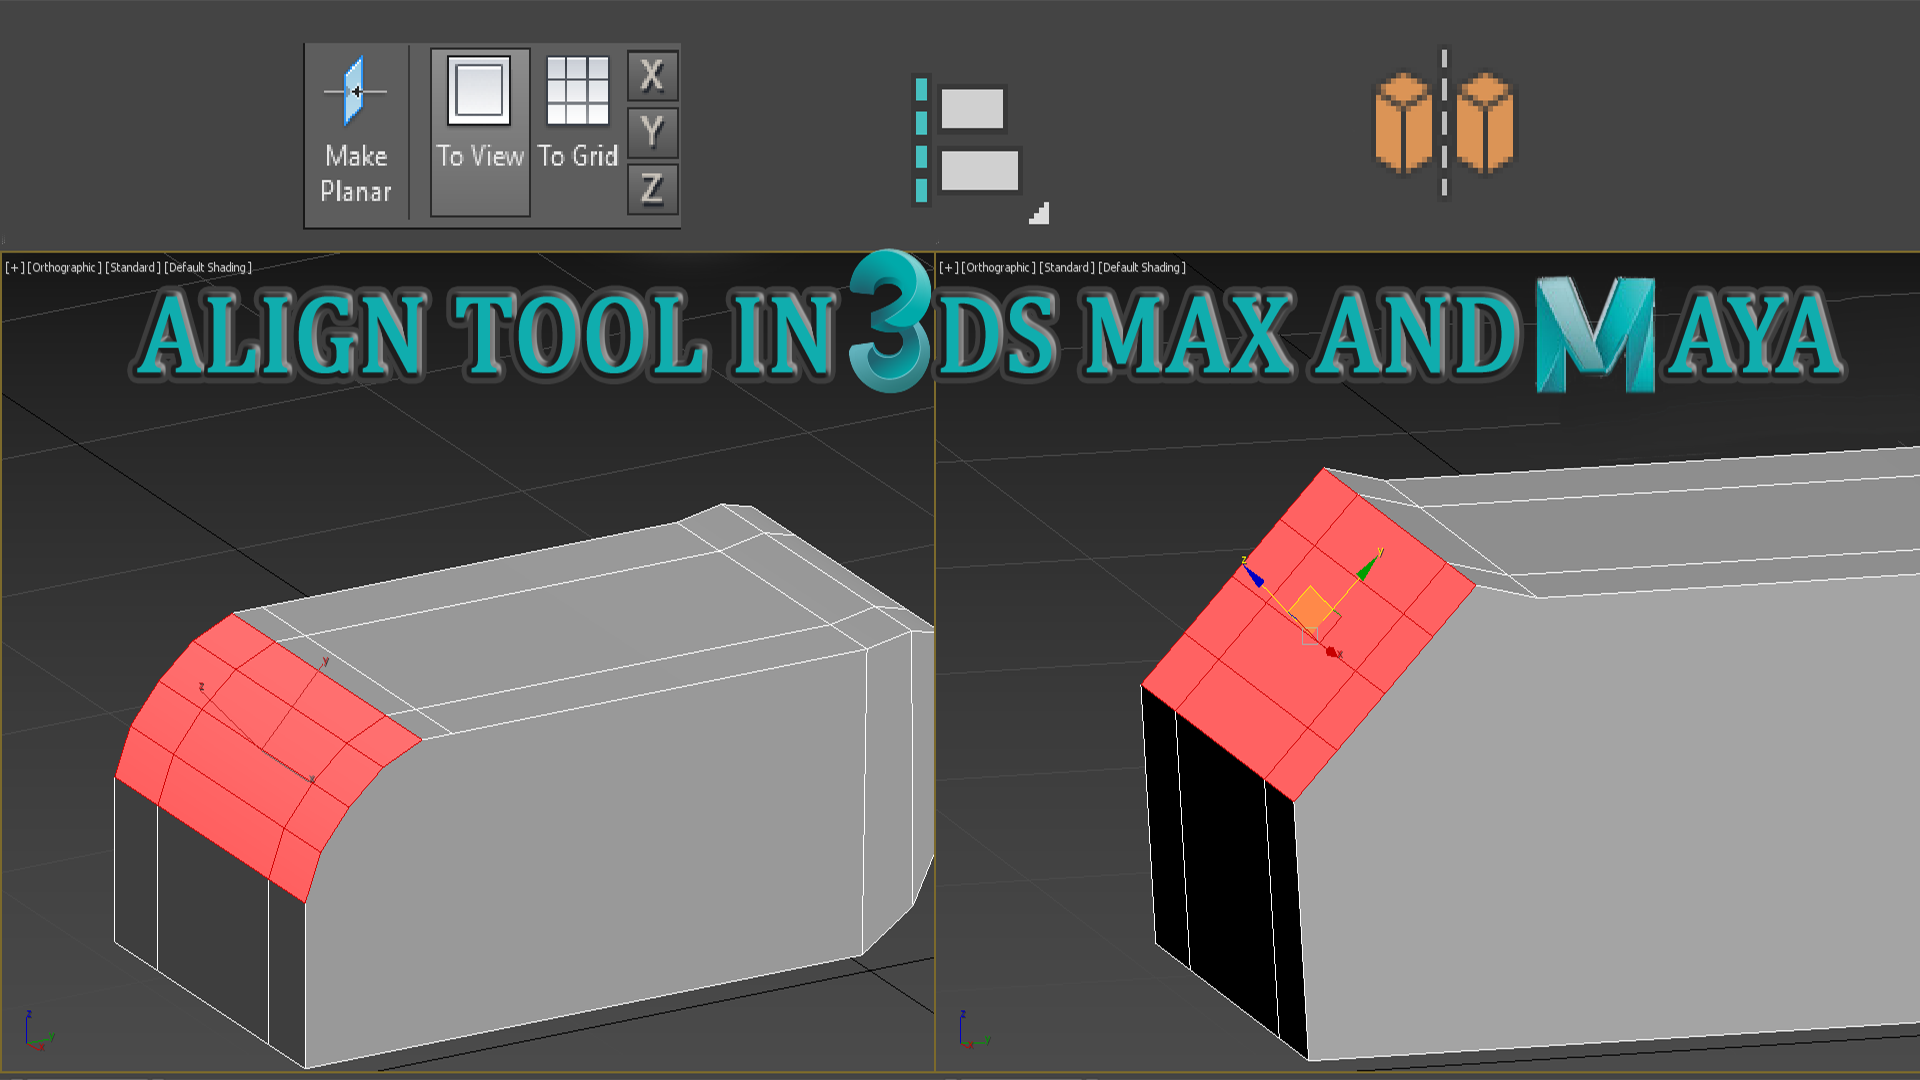 ALIGN TOOL IN MAYA AND 3DS MAX